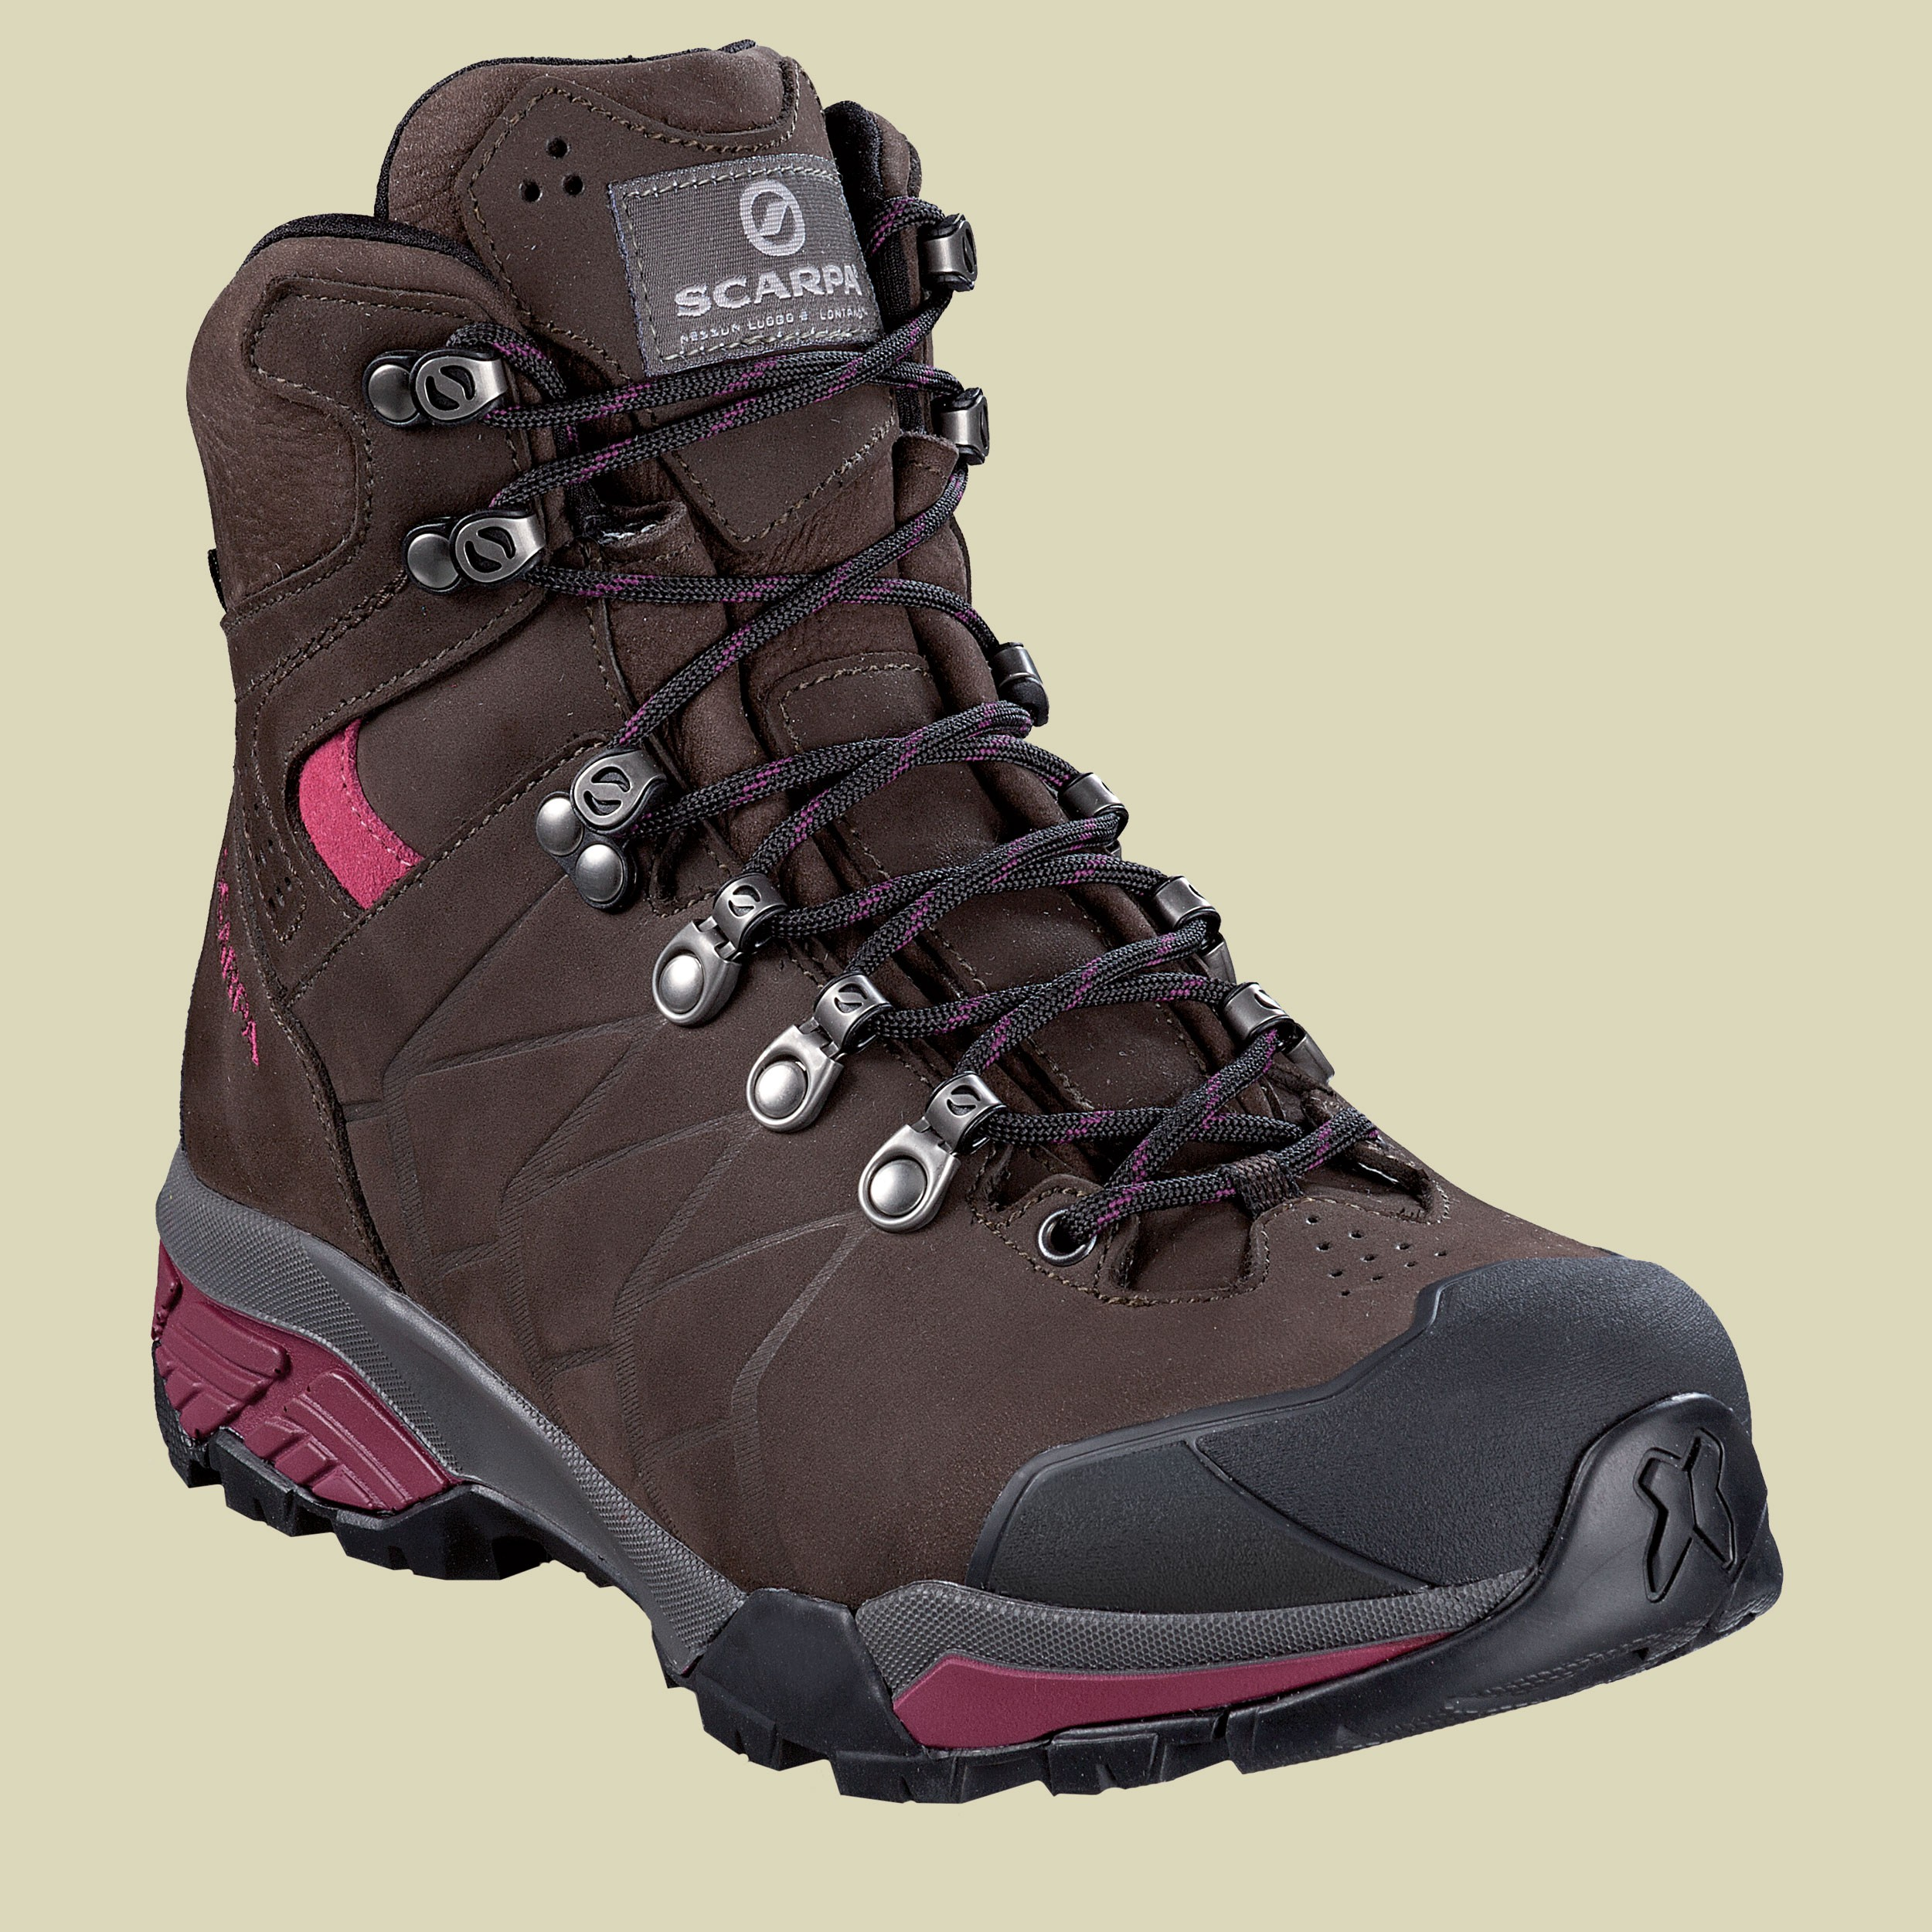 detailed look 22aed faf21 Scarpa Schuhe - ZG Pro GTX Women